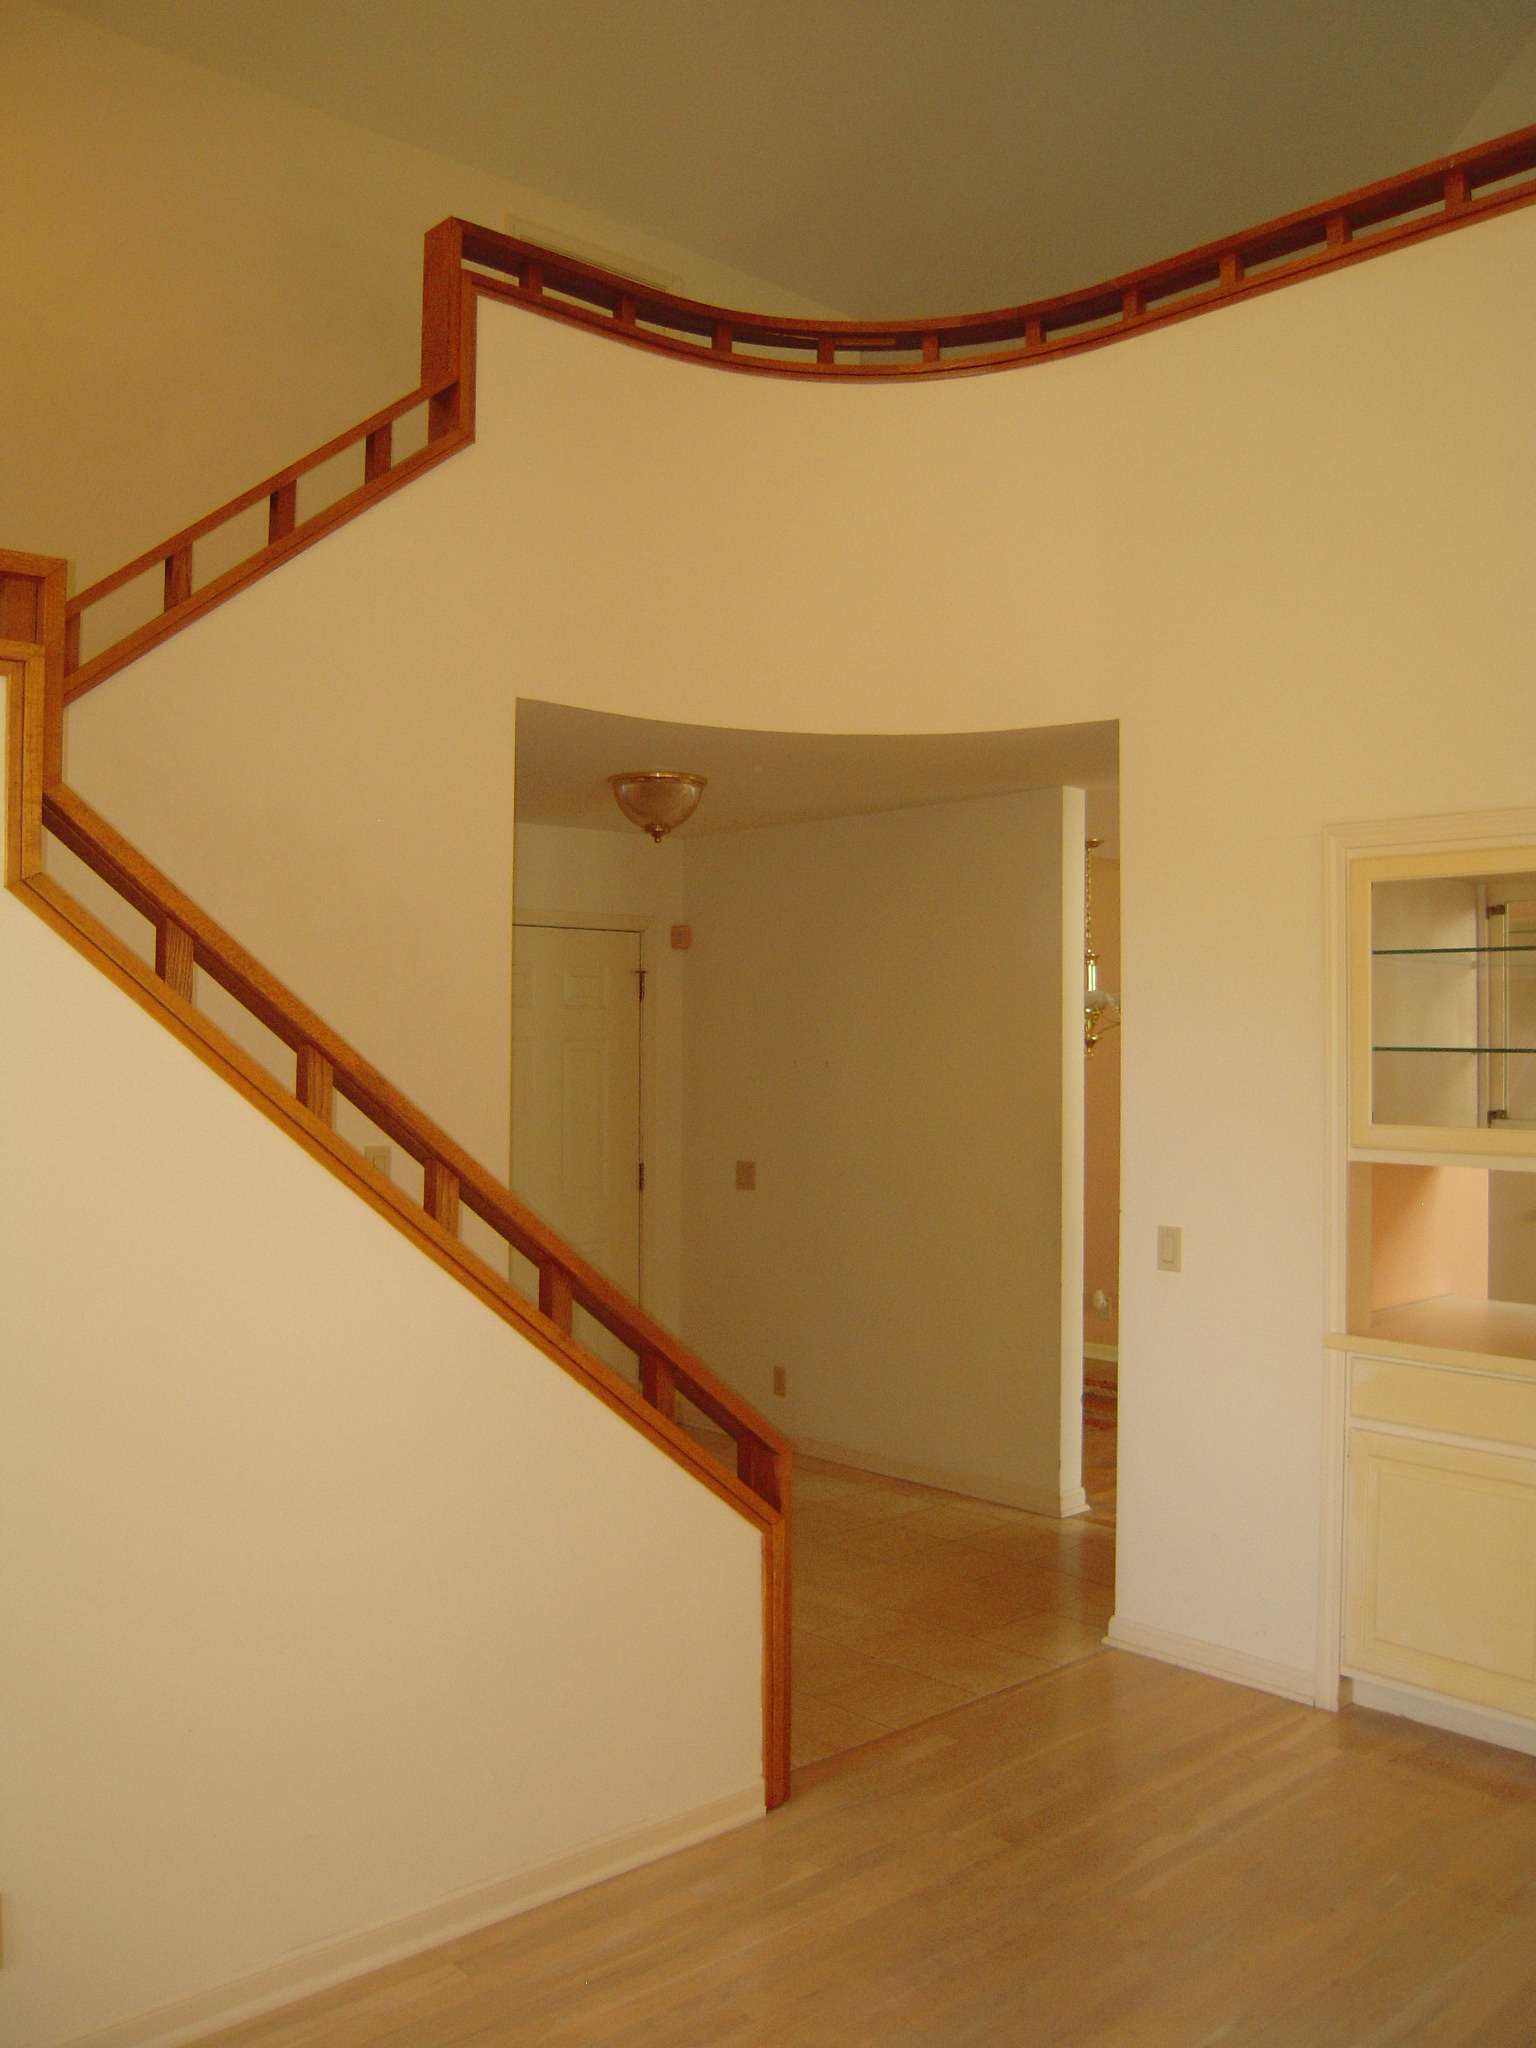 House renovation services 28 images mercer county nj for House renovation services